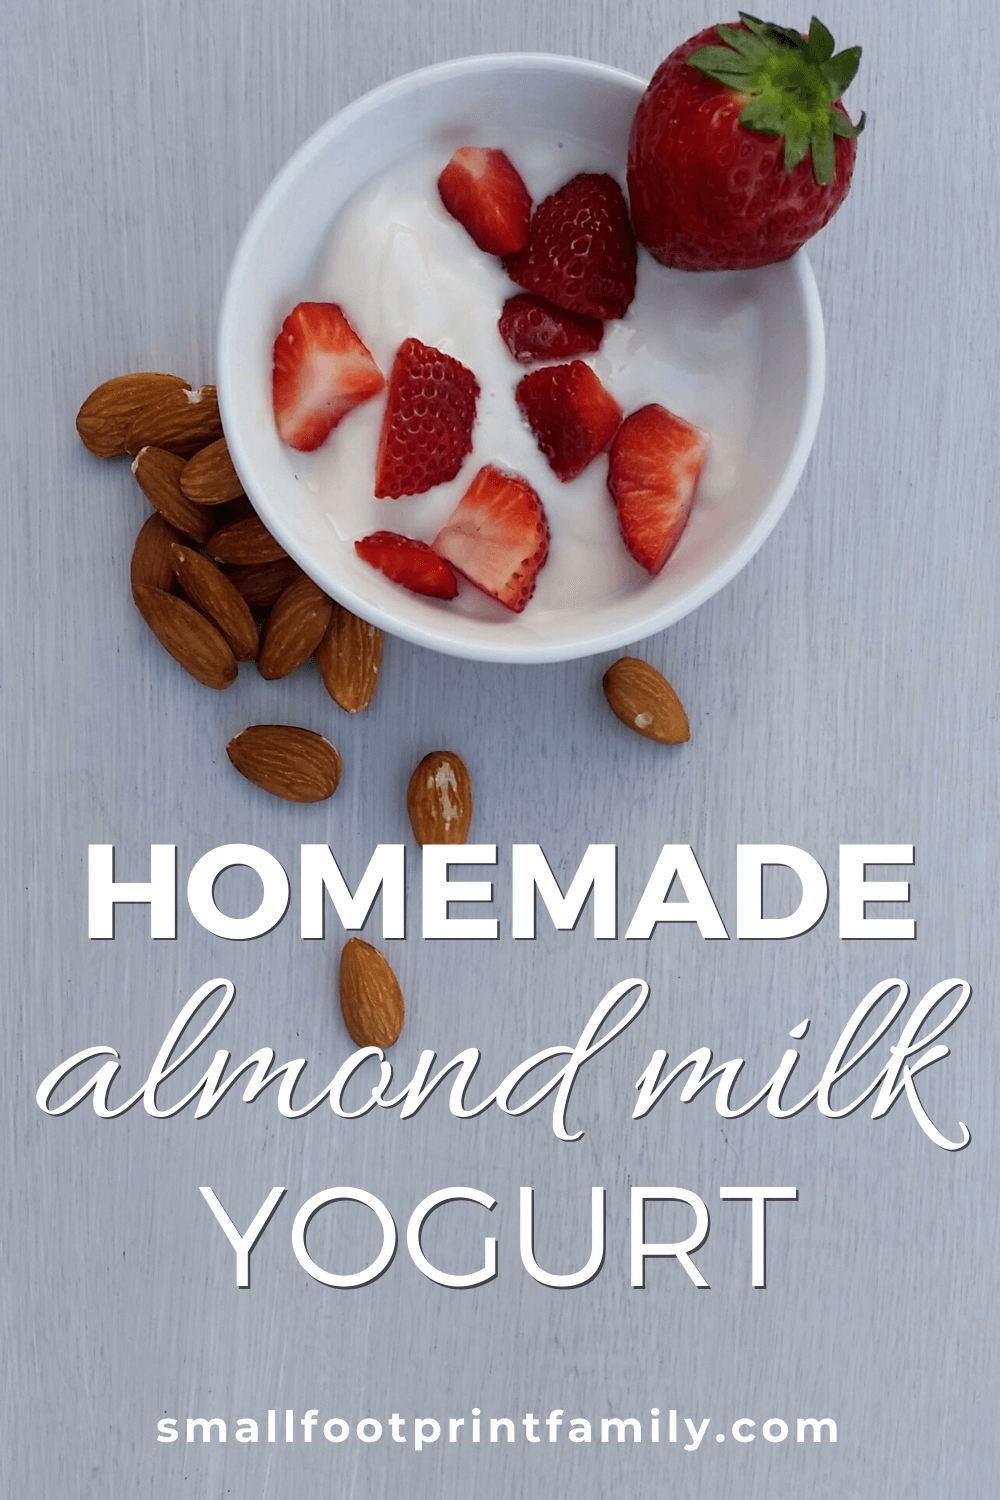 This homemade almond milk yogurt recipe is a delicious, affordable option if you and your family love yogurt but are vegan or can't tolerate dairy products.#paleo #paleodiet #vegan #vegetarian #lactofermentation #fermentation #recipe #yogurt #dessert #snack